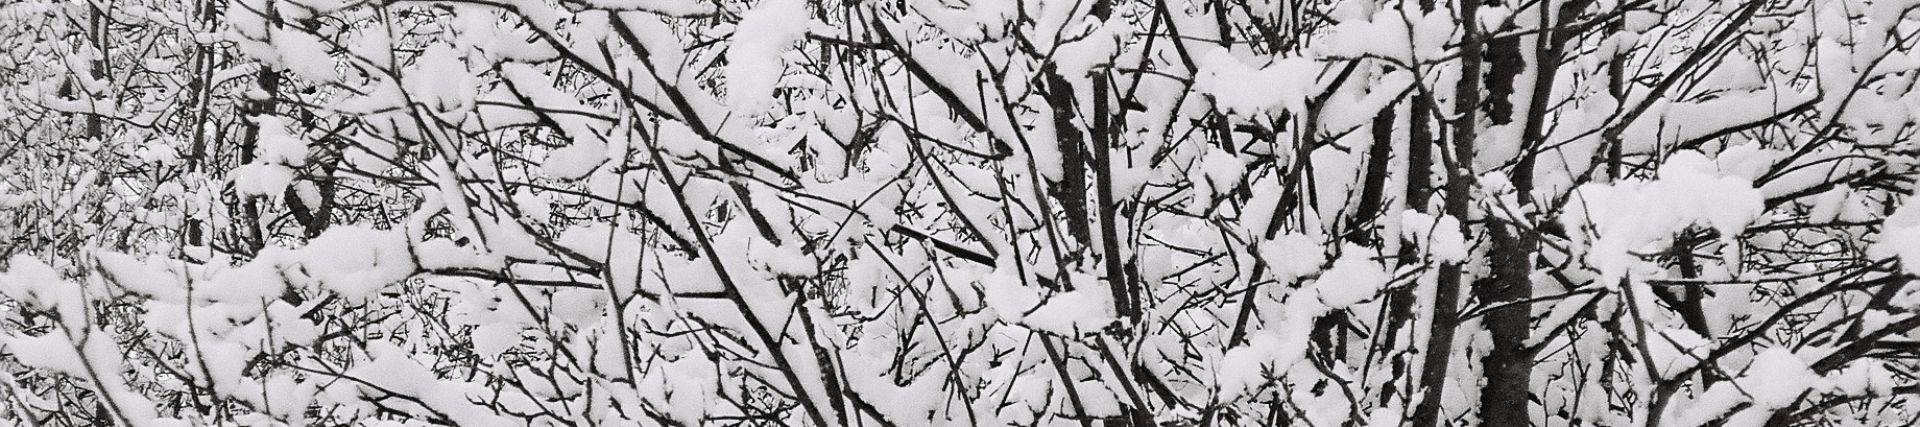 An image of some trees in the snow